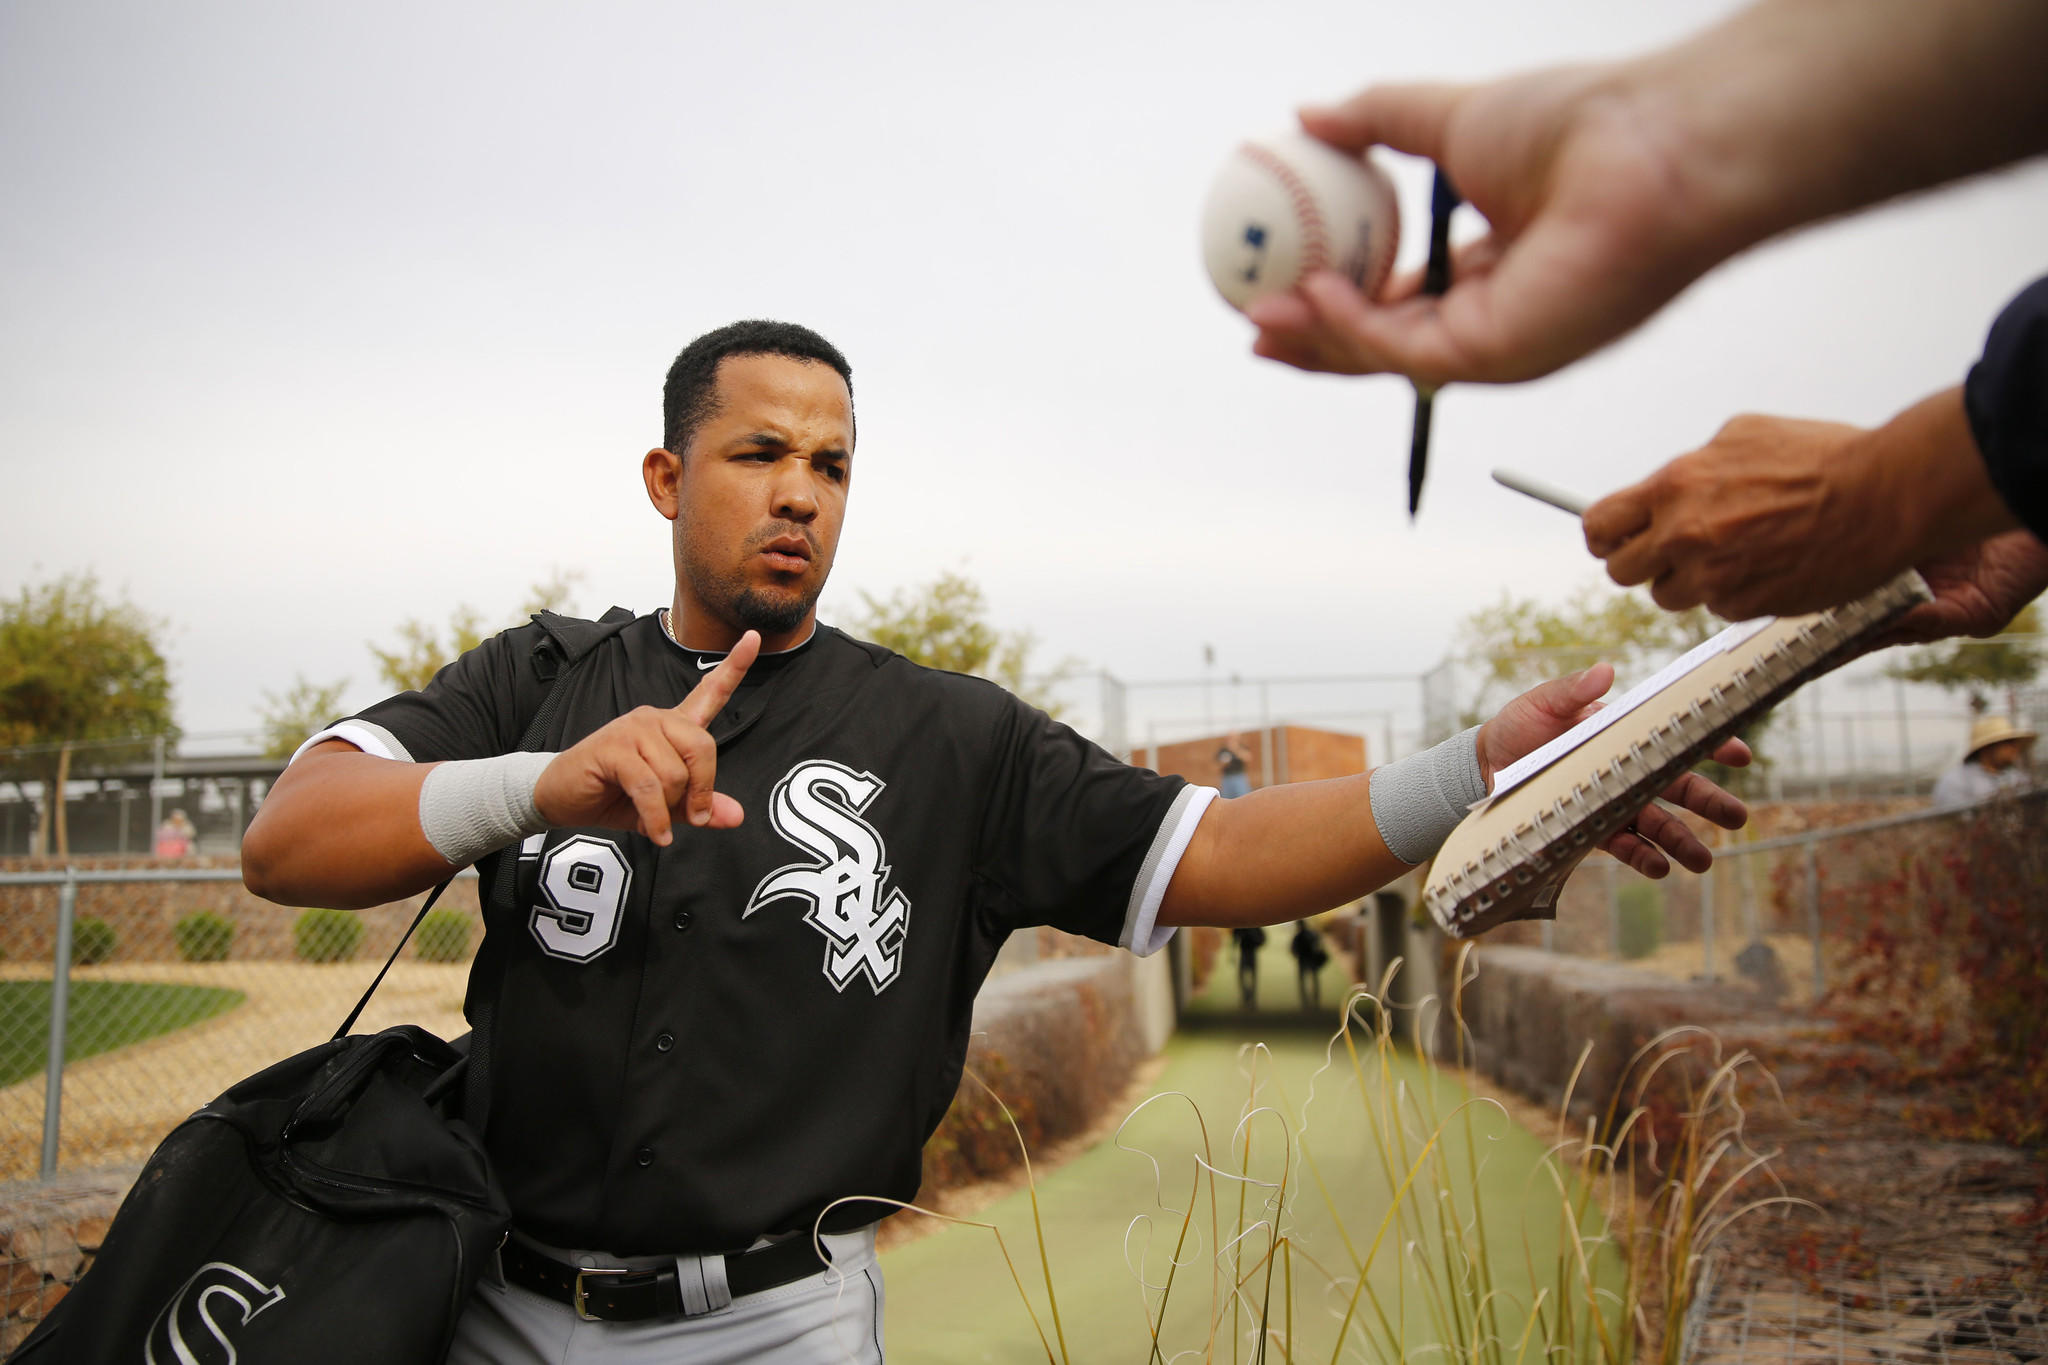 White Sox infielder Jose Abreu signals he'll sine just one more autograph Tuesday, Feb. 25, 2014 in Glendale prior to an intrasquad practice game Tuesday, Feb. 25, 2014 in Glendale, Arizona.